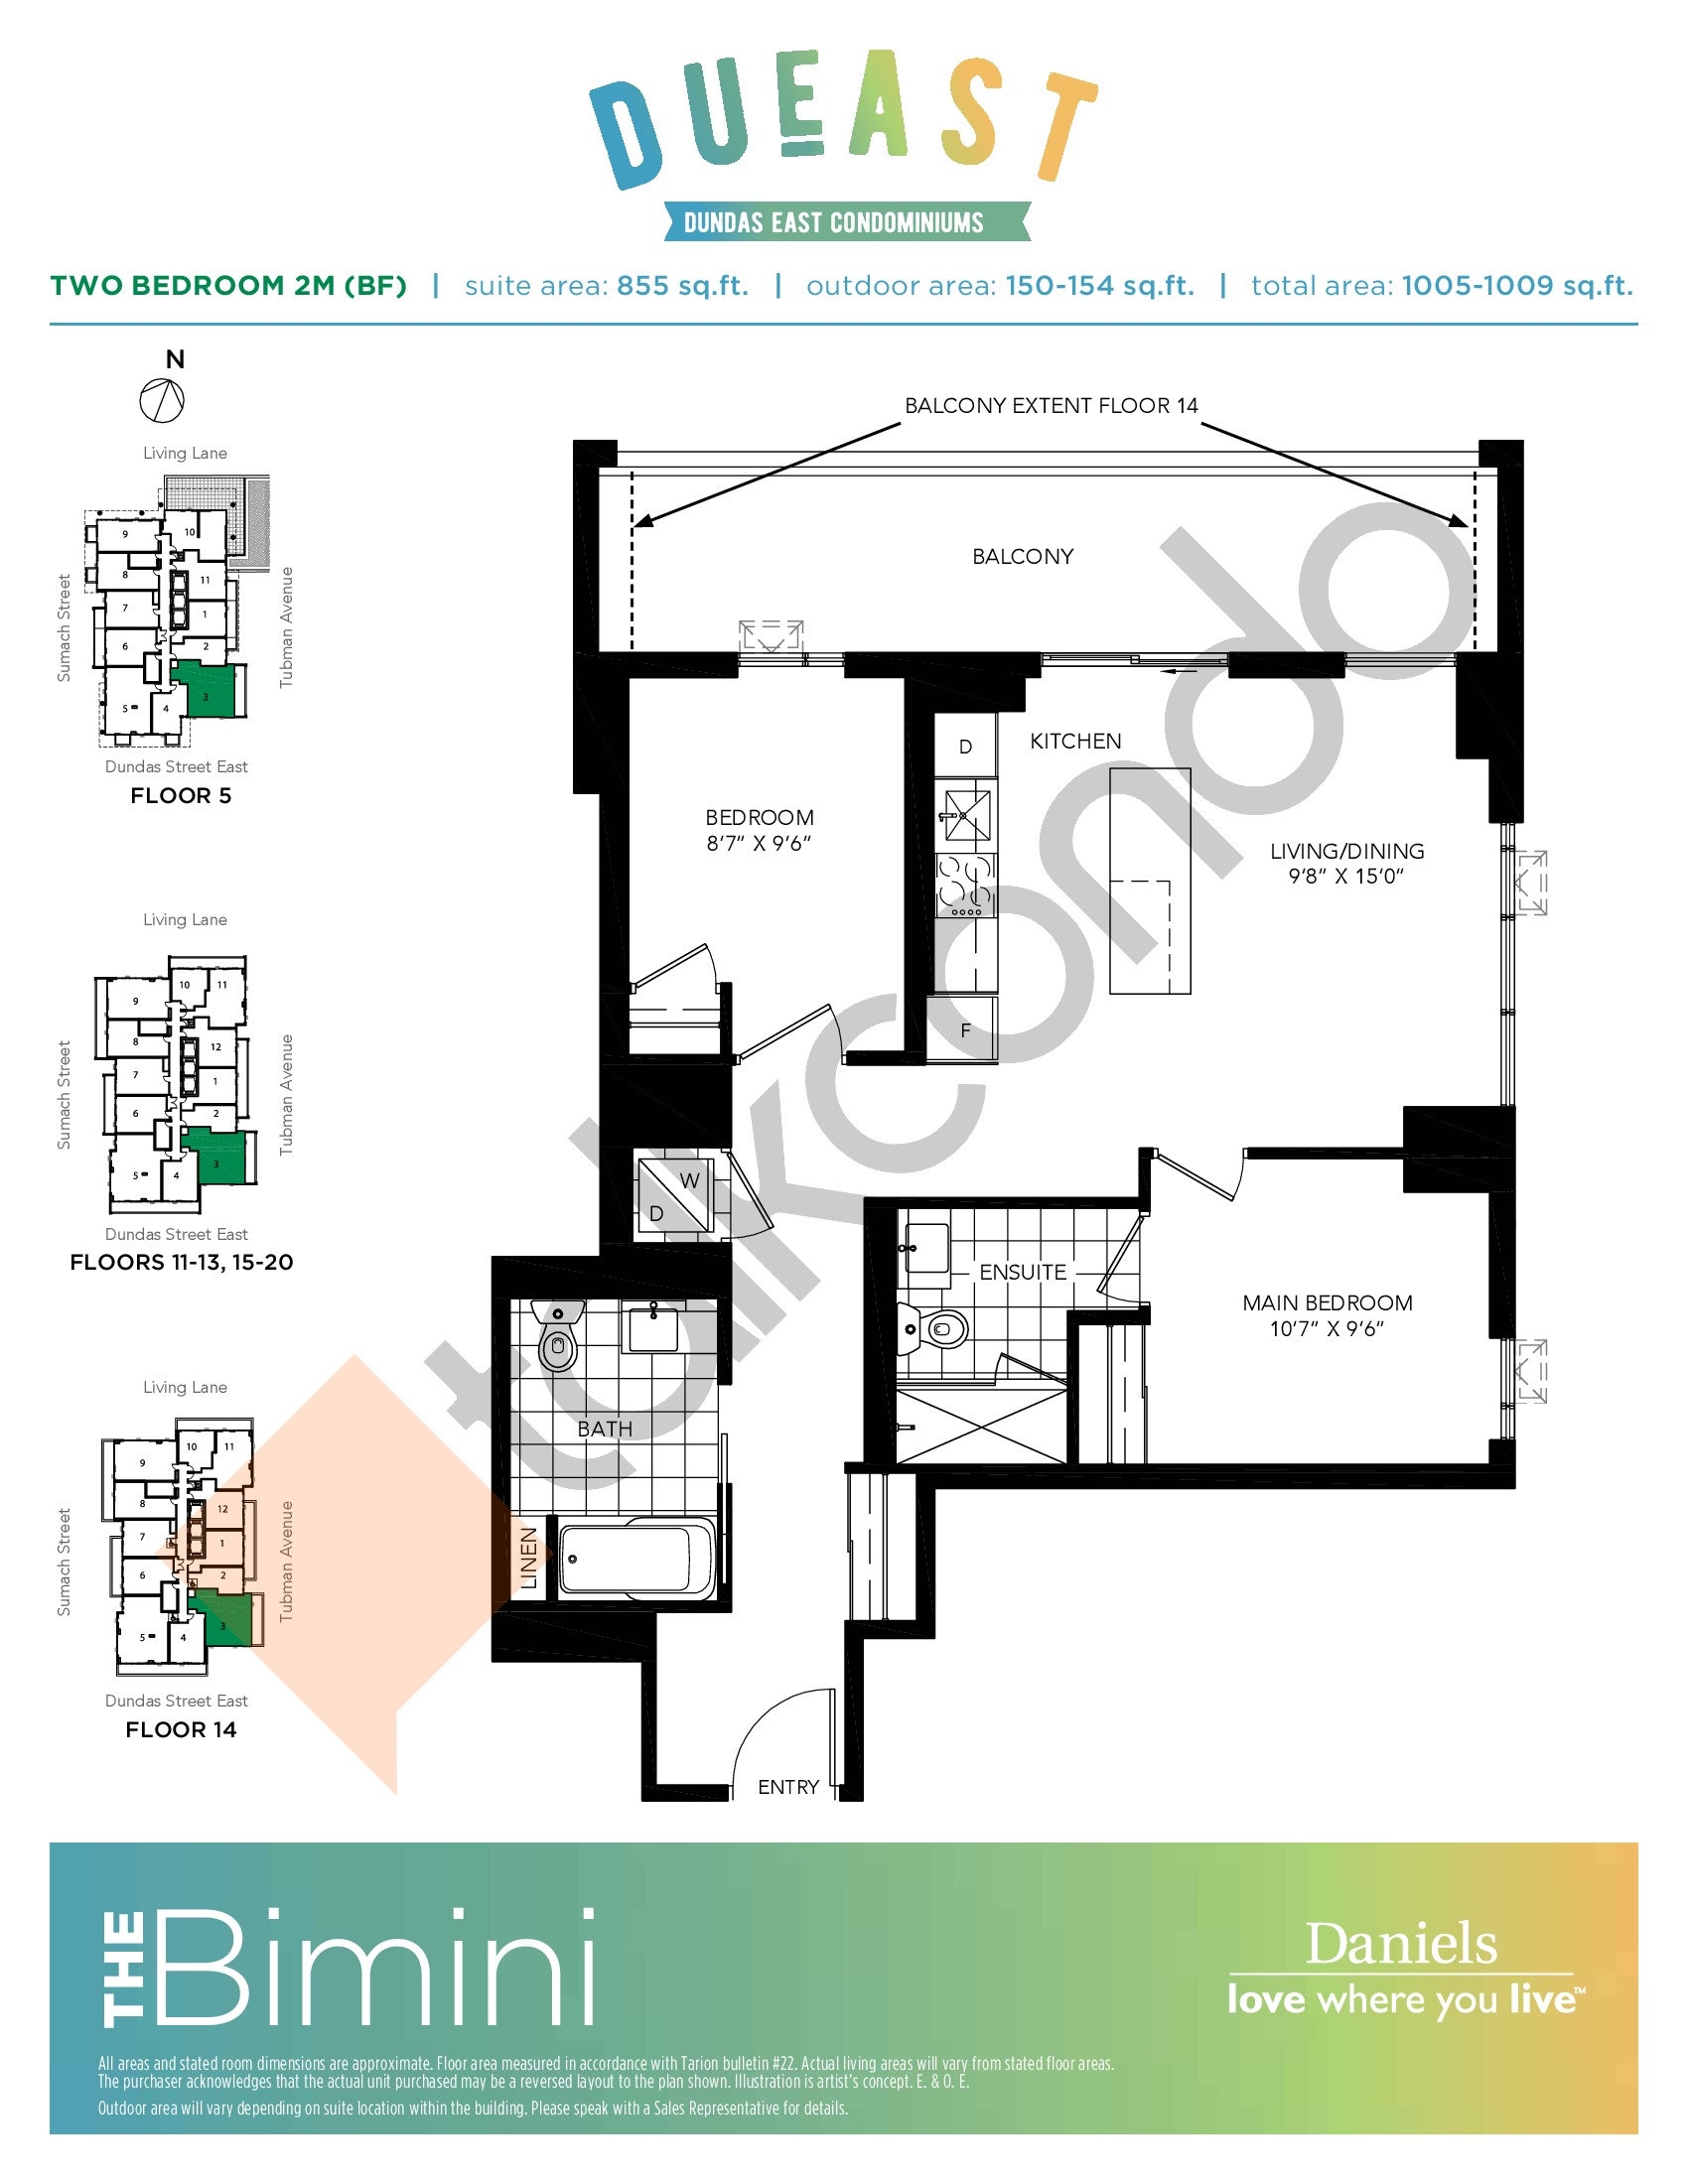 The Bimini 2M (BF) Floor Plan at DuEast Condos - 855 sq.ft